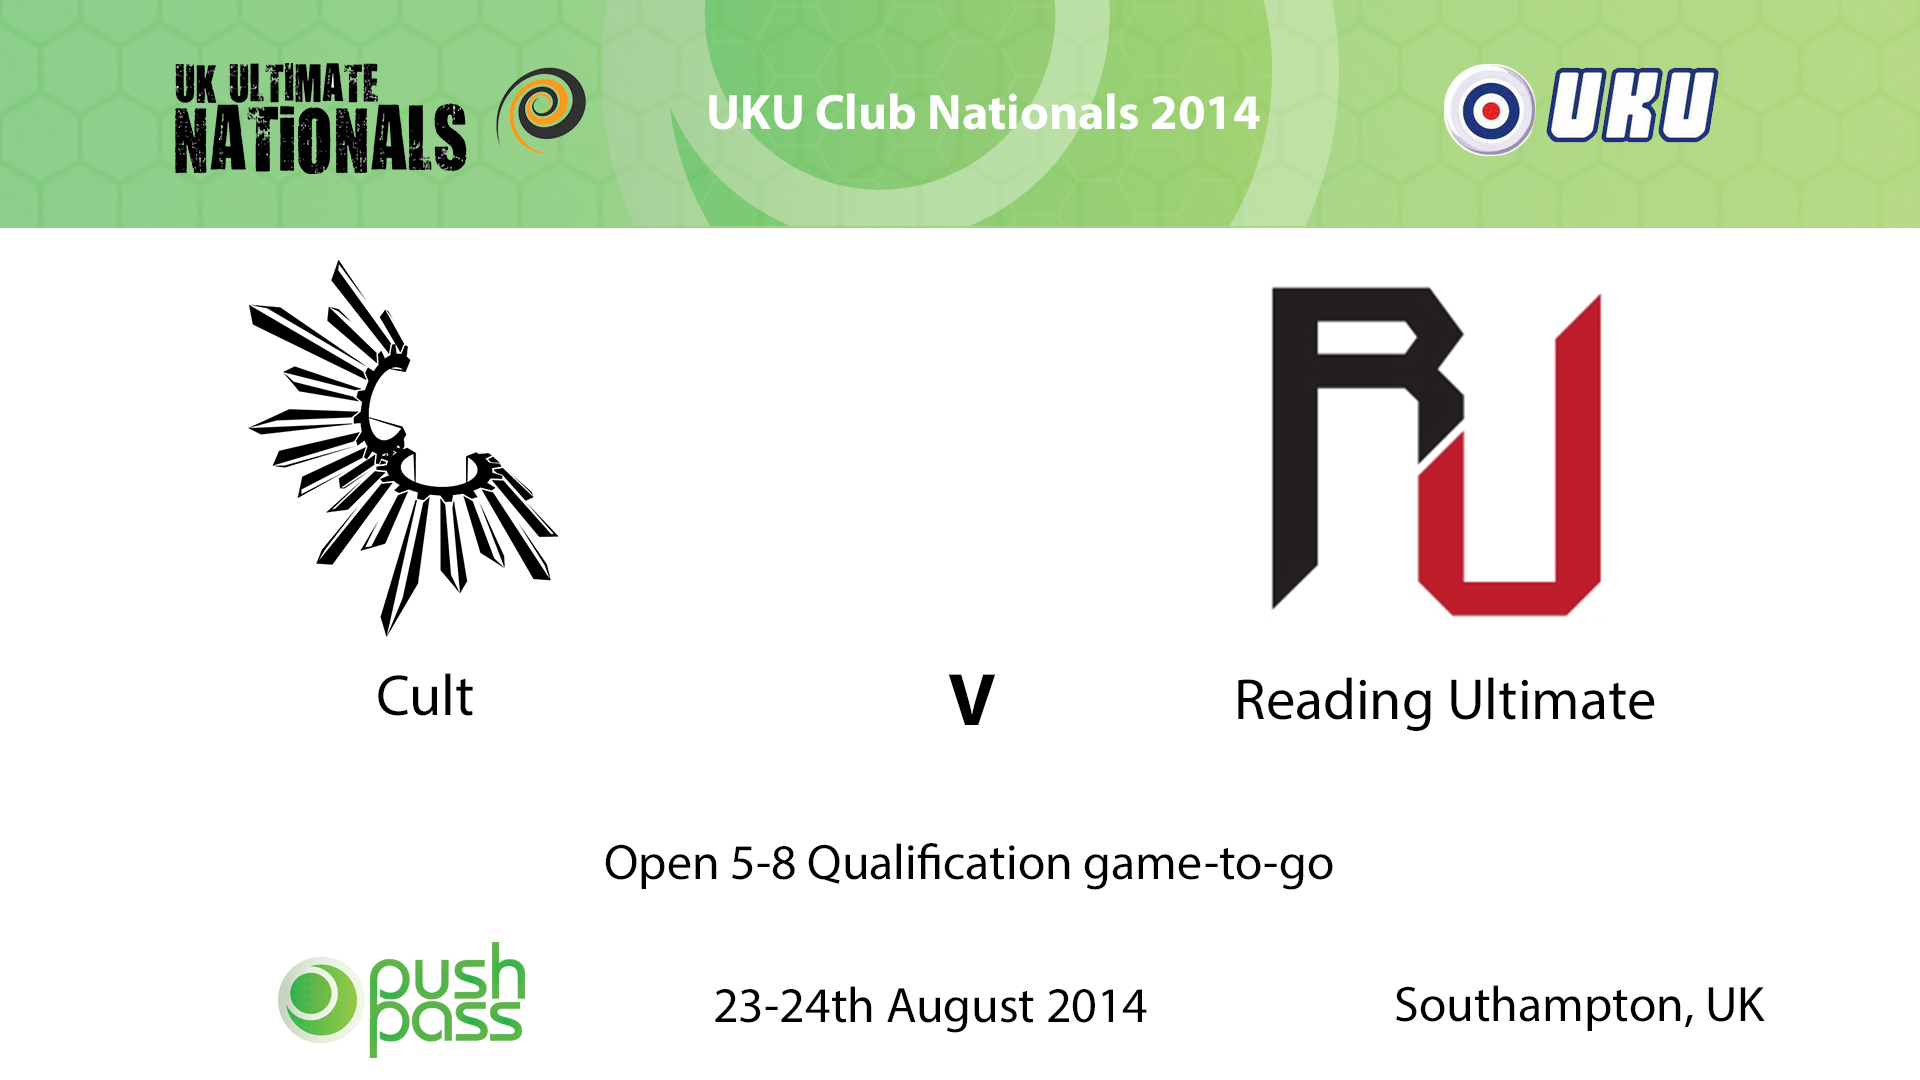 UKU Club Nationals 2014: Open 5-8 Qualification play-off - Cambridge v Reading